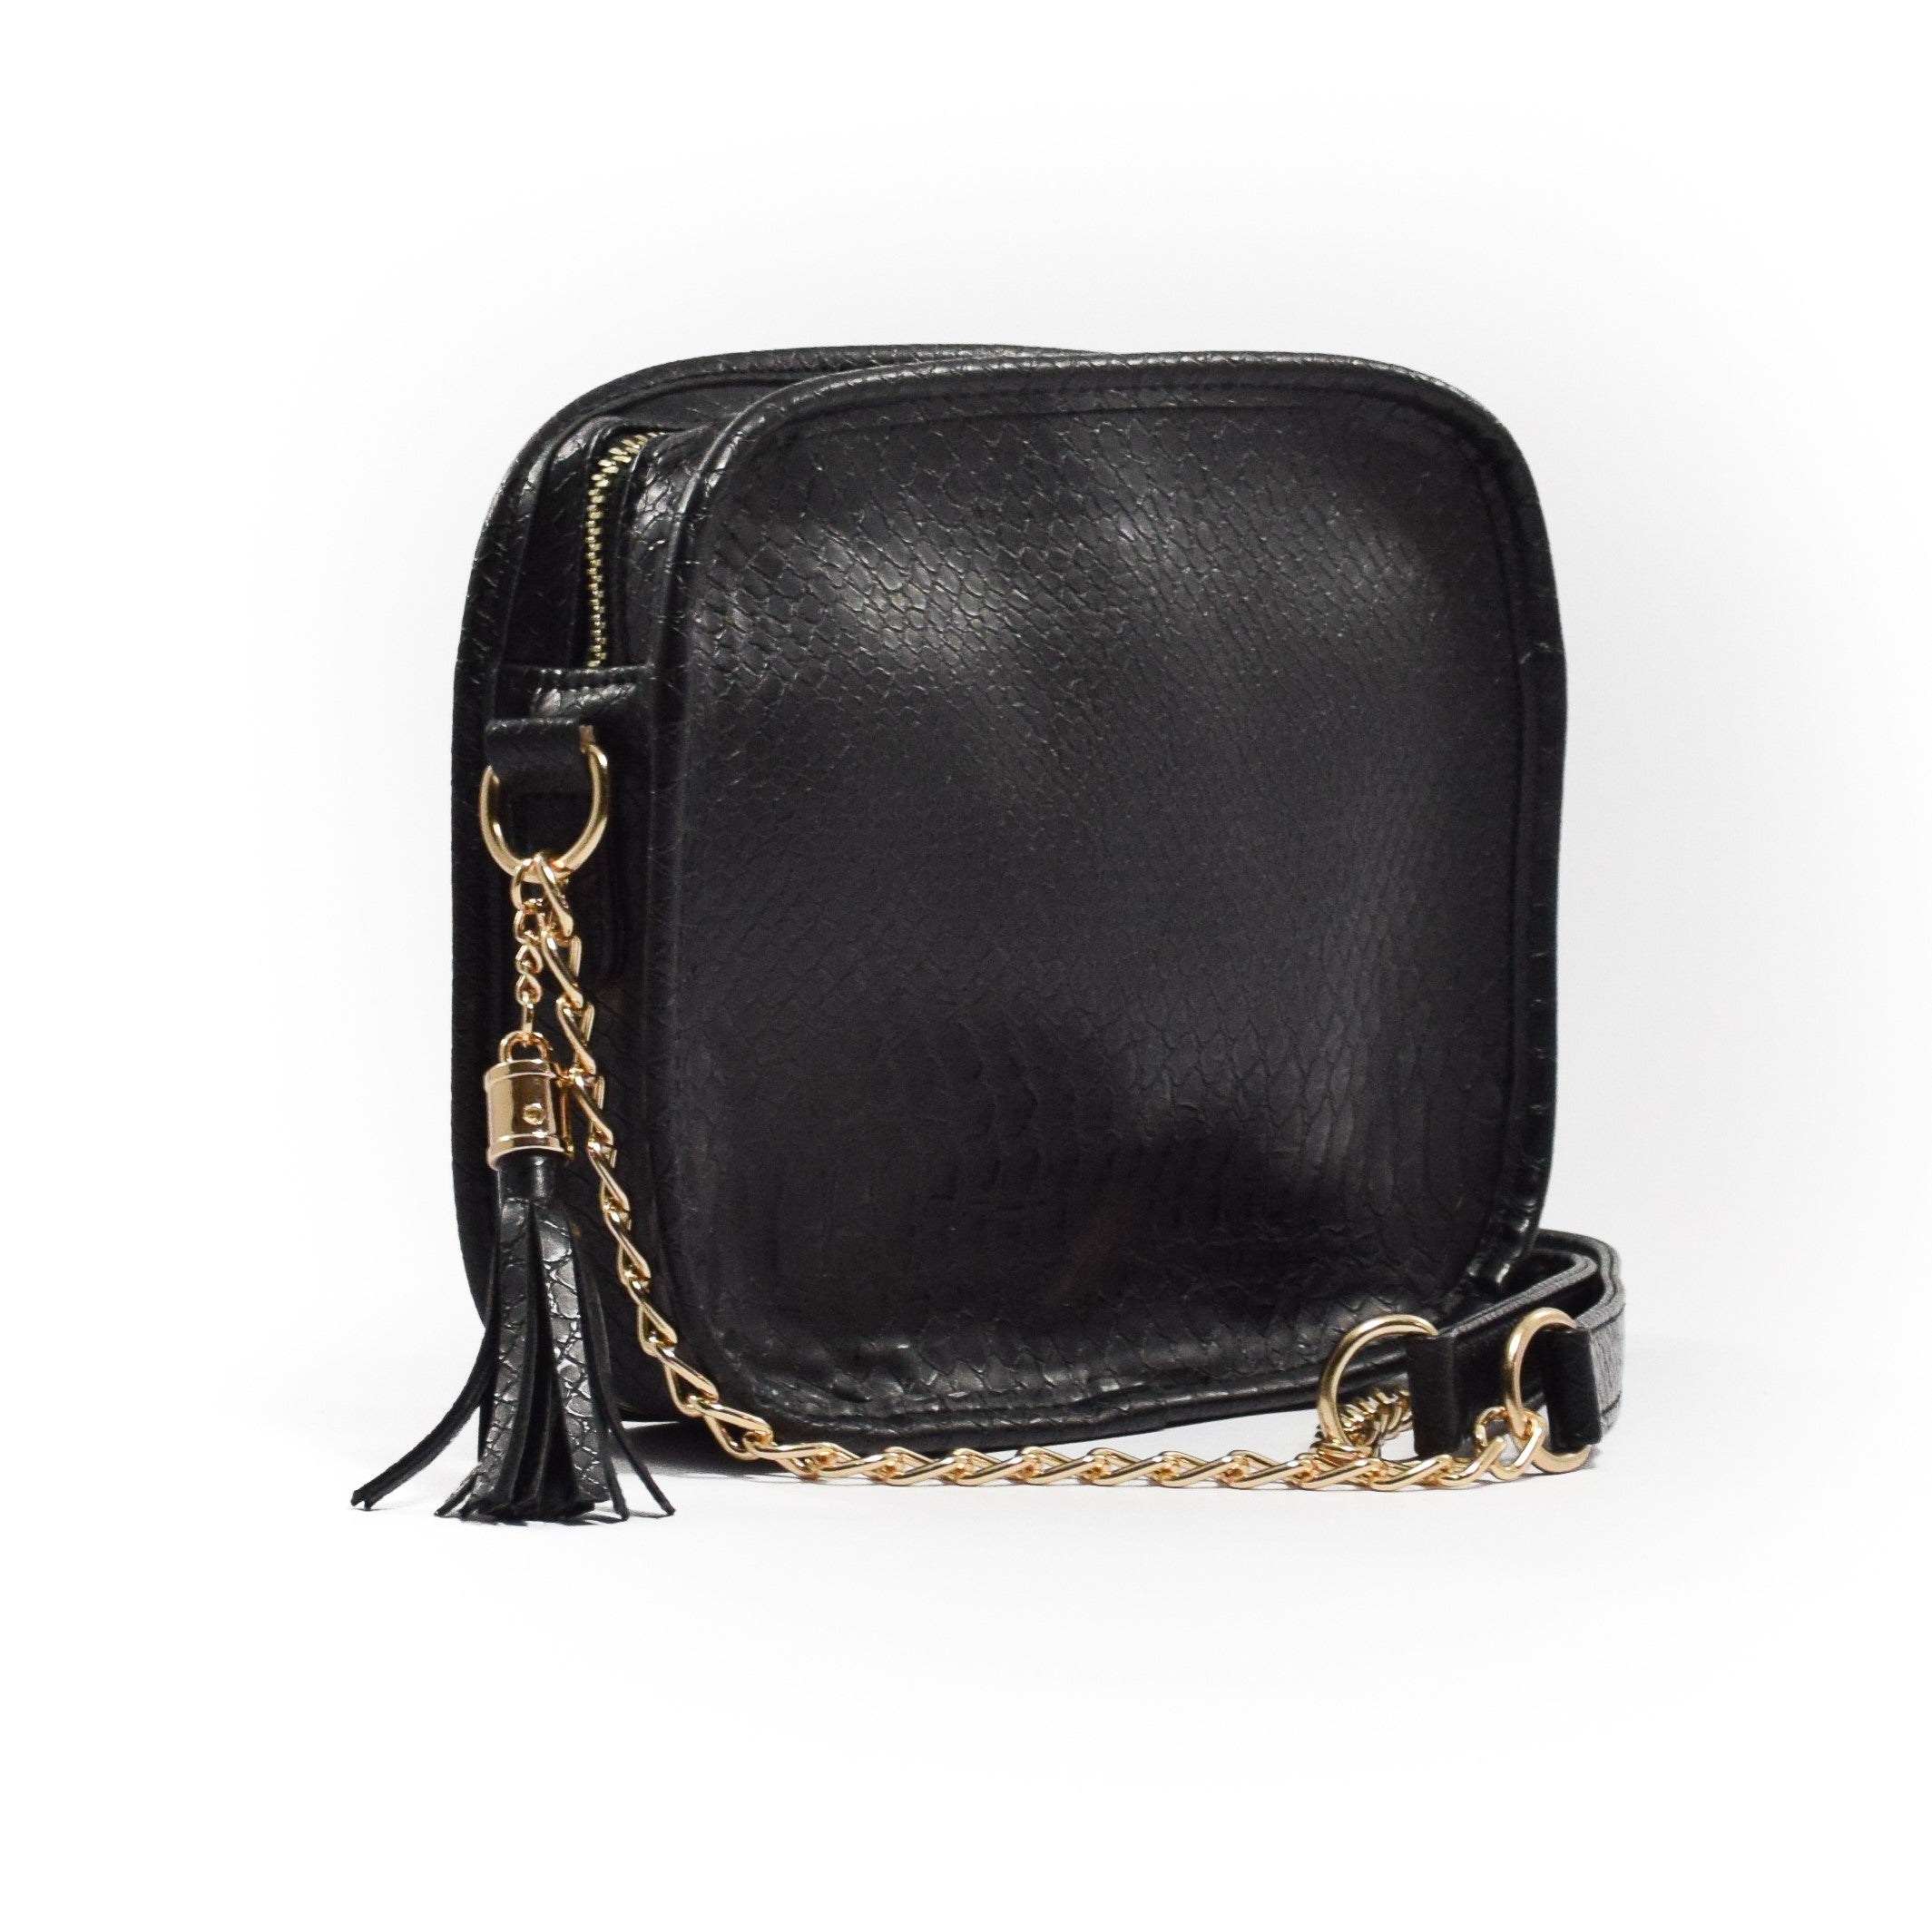 *FINAL SALE* The Sightseer Crossbody